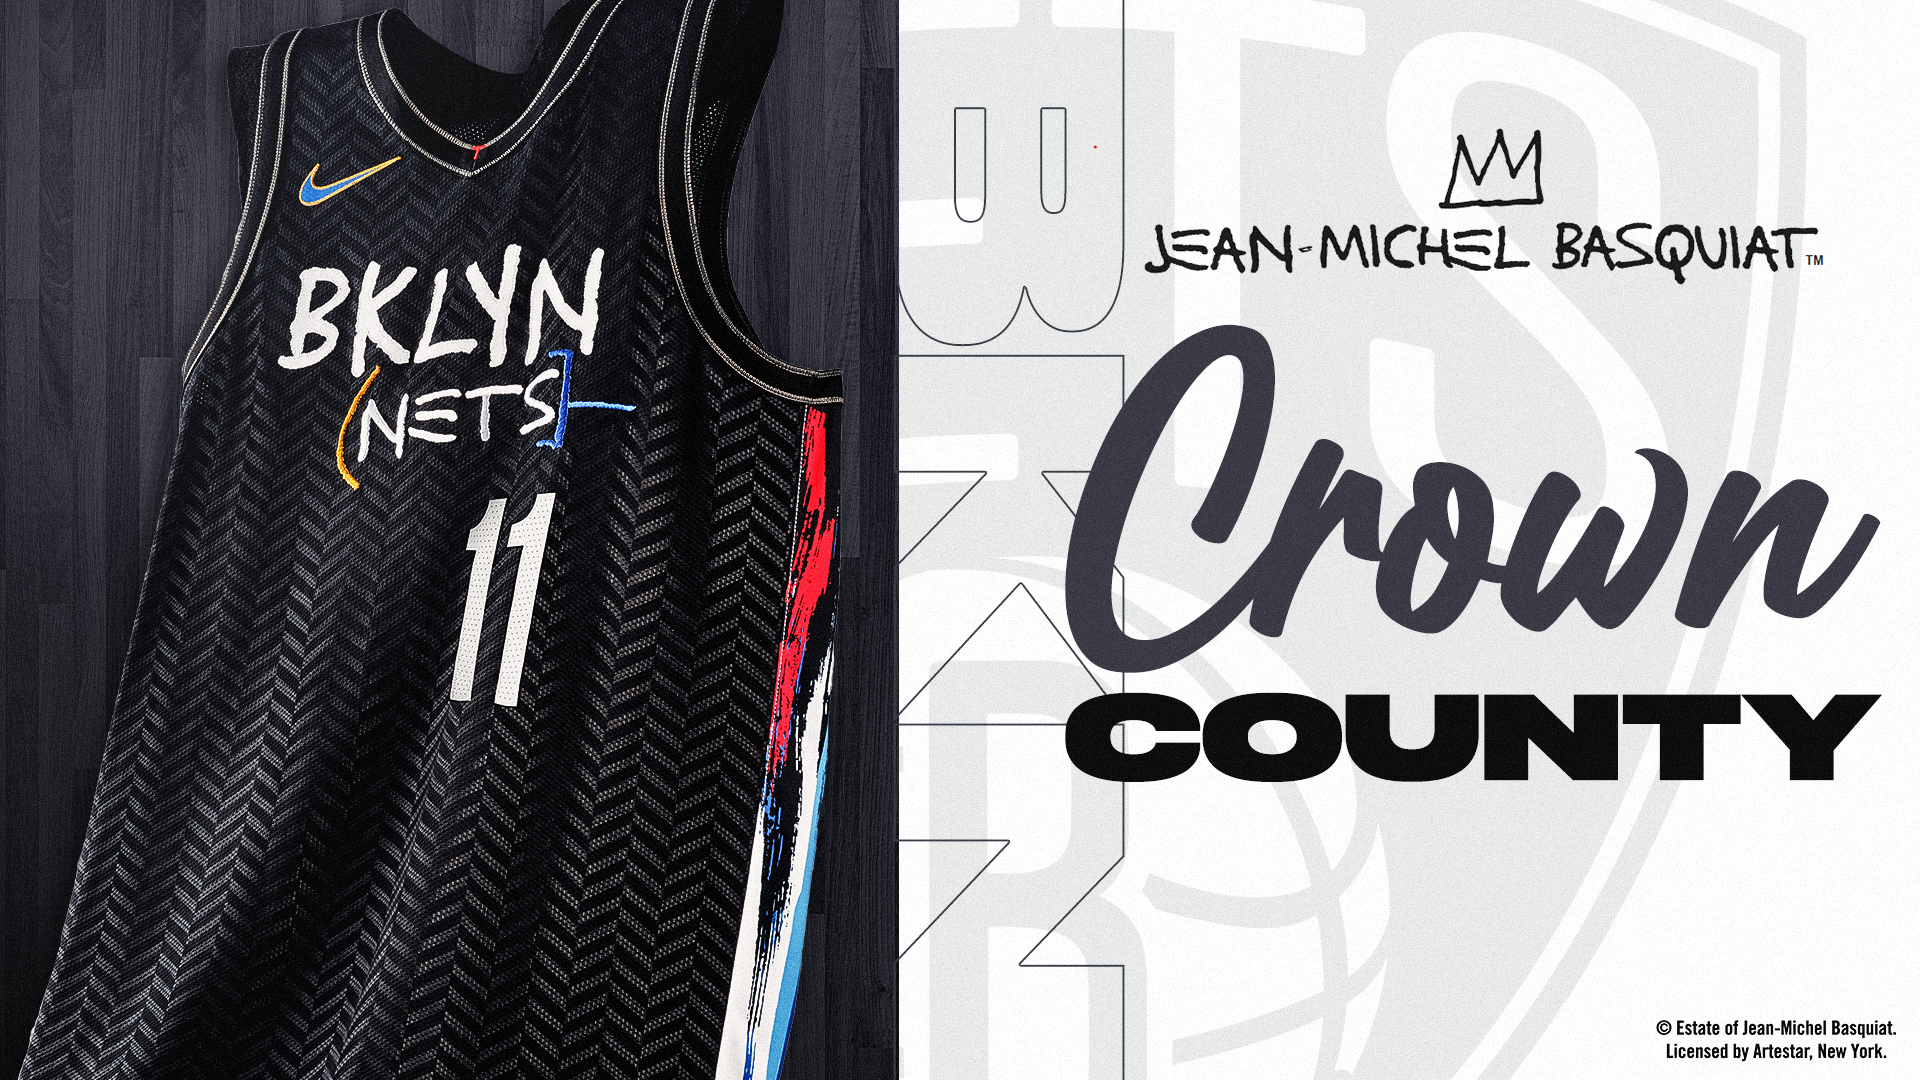 Brooklyn Nets: Crown County